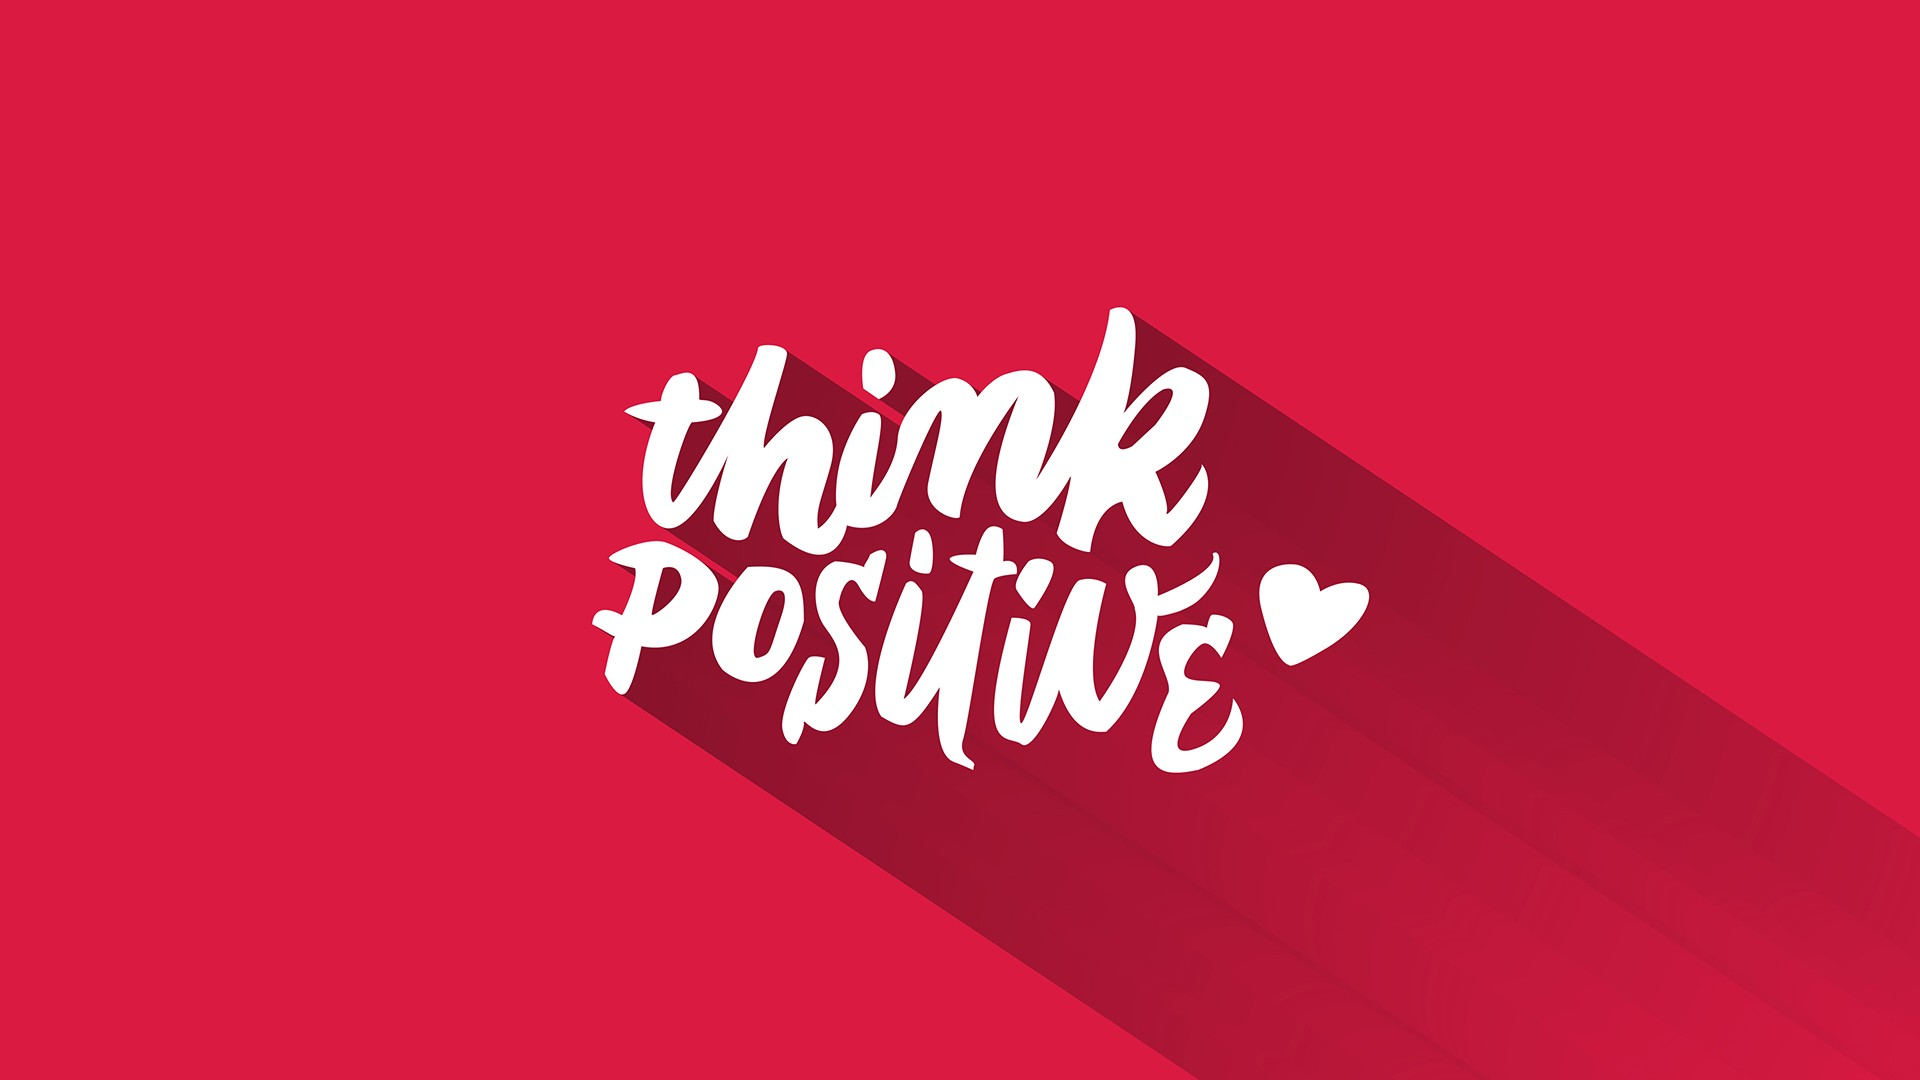 800x1280 Wallpaper Hd Think Positive Hd Typography 4k Wallpapers Images